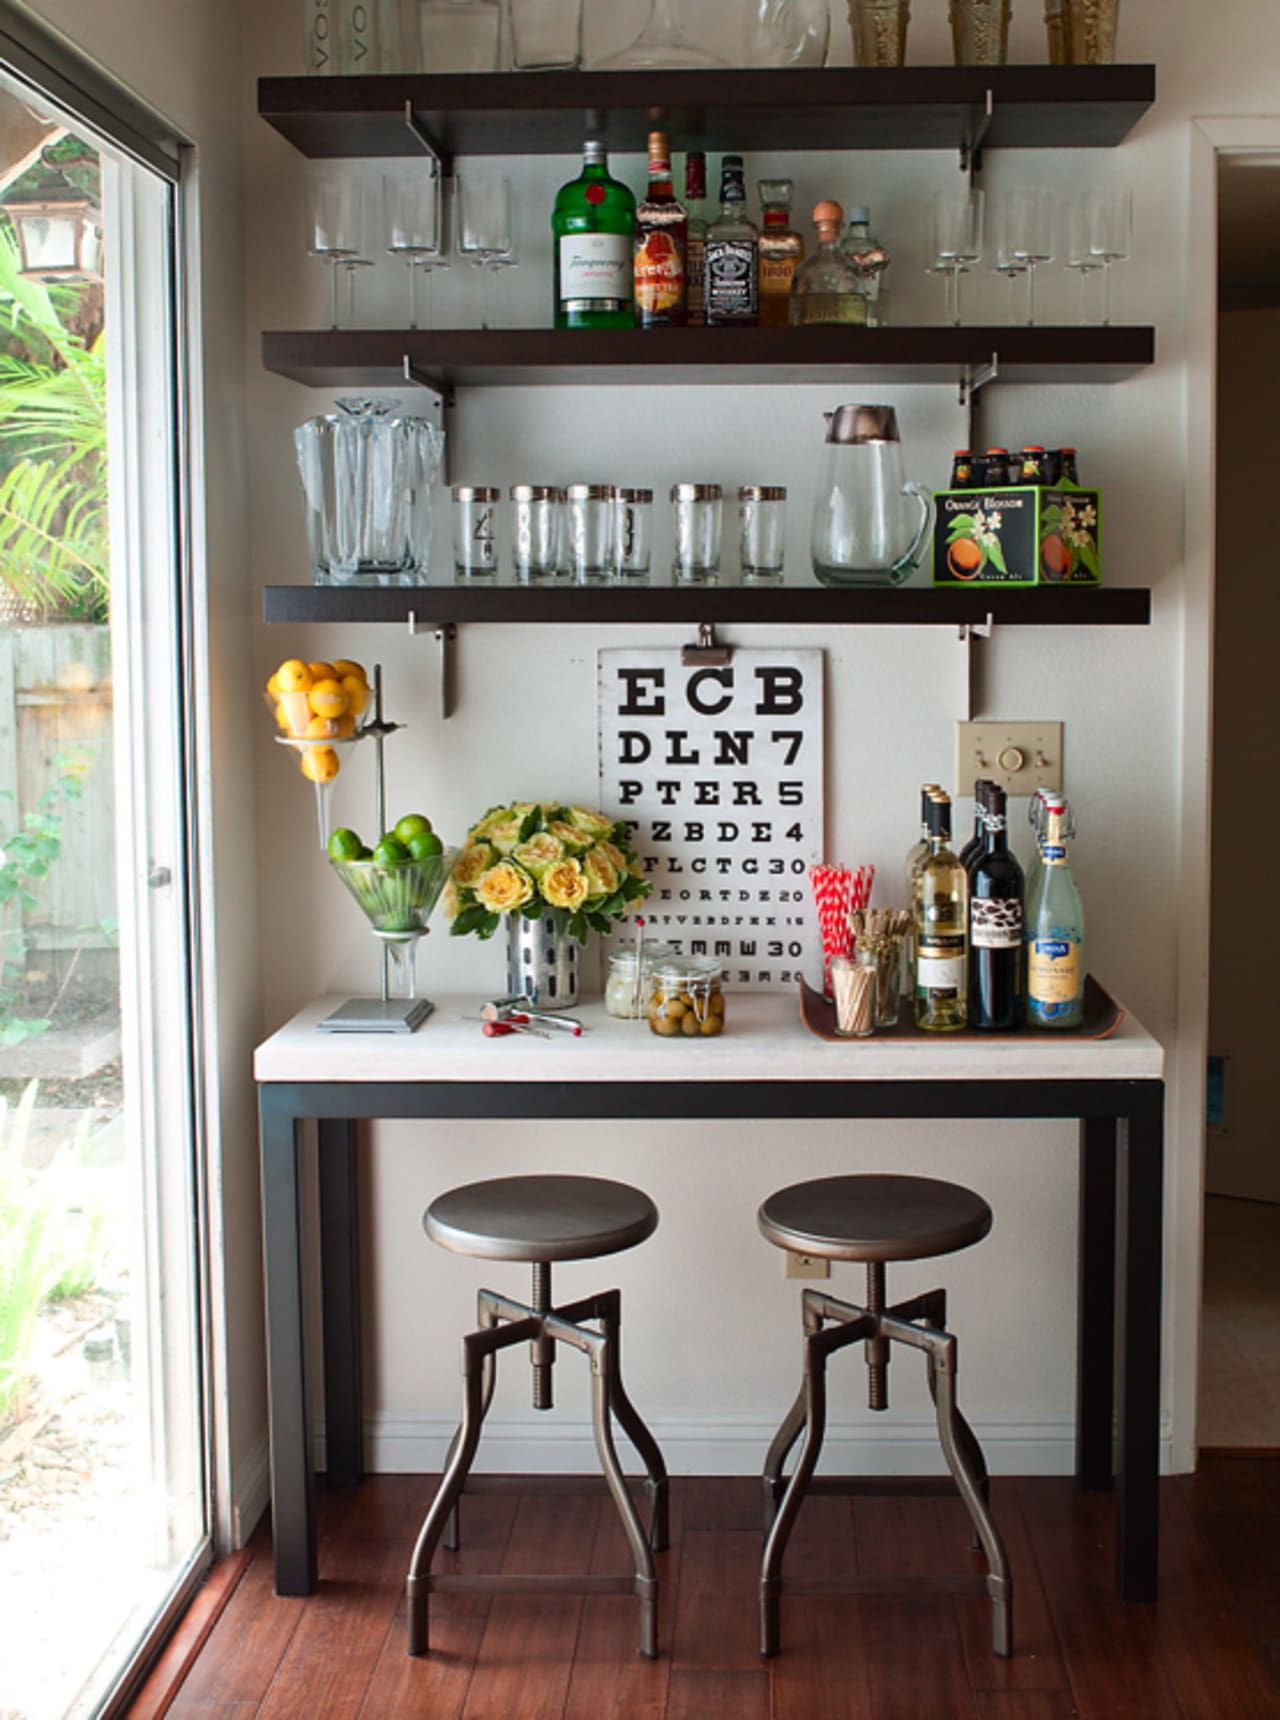 12 Ways to Store & Display Your Home Bar -   18 diy home bar